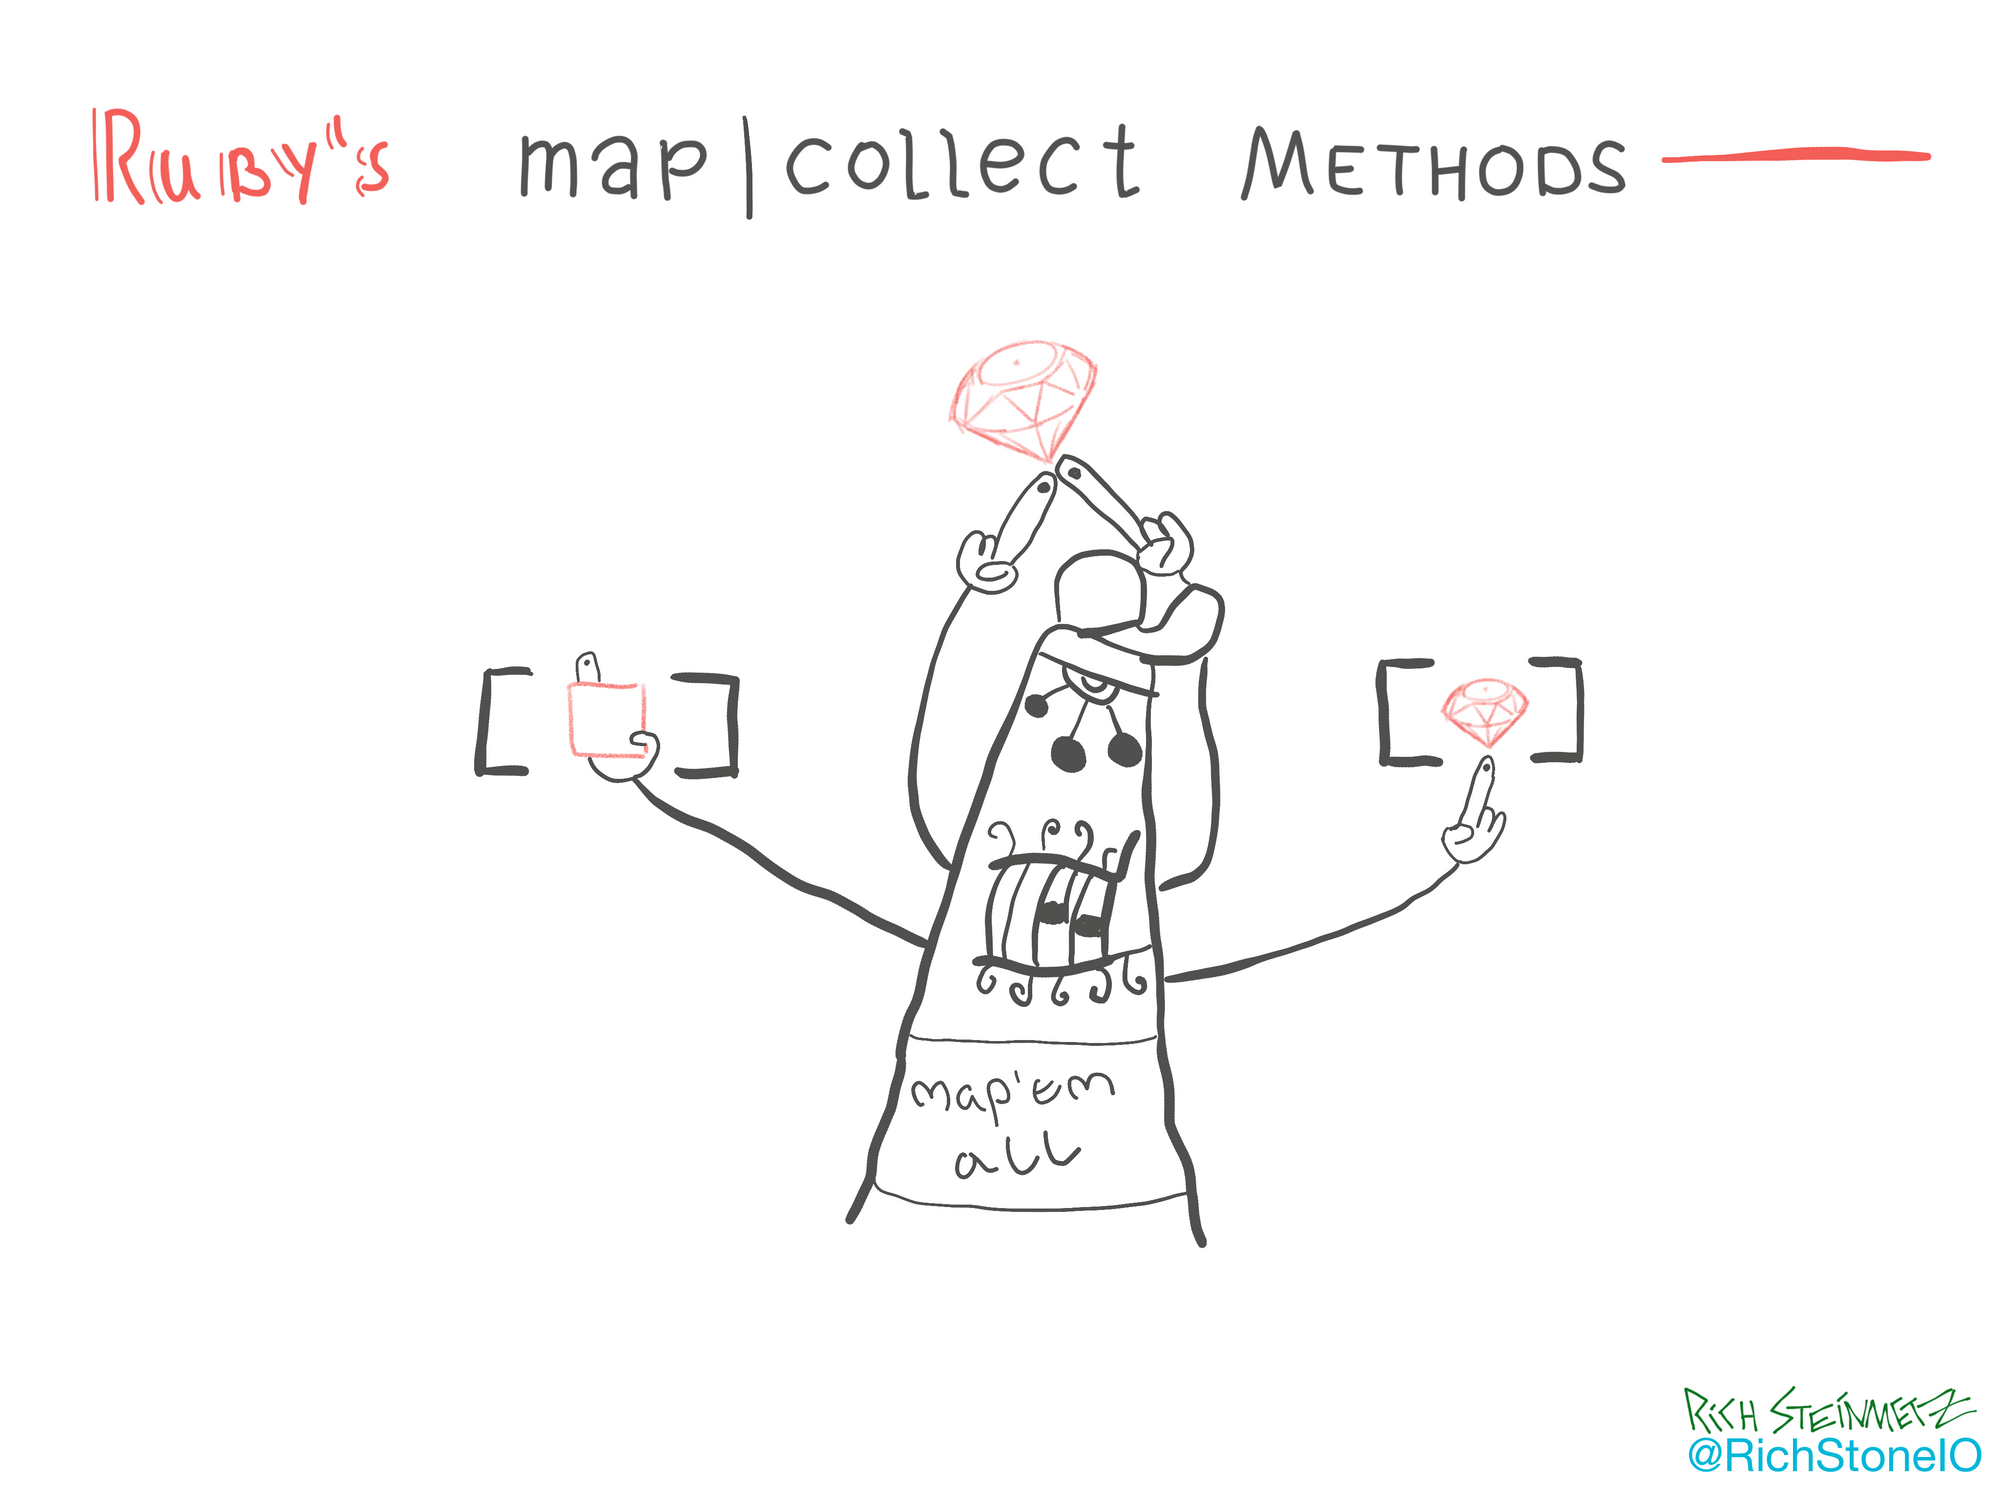 Ruby's map | collect methods explained visually 🎨